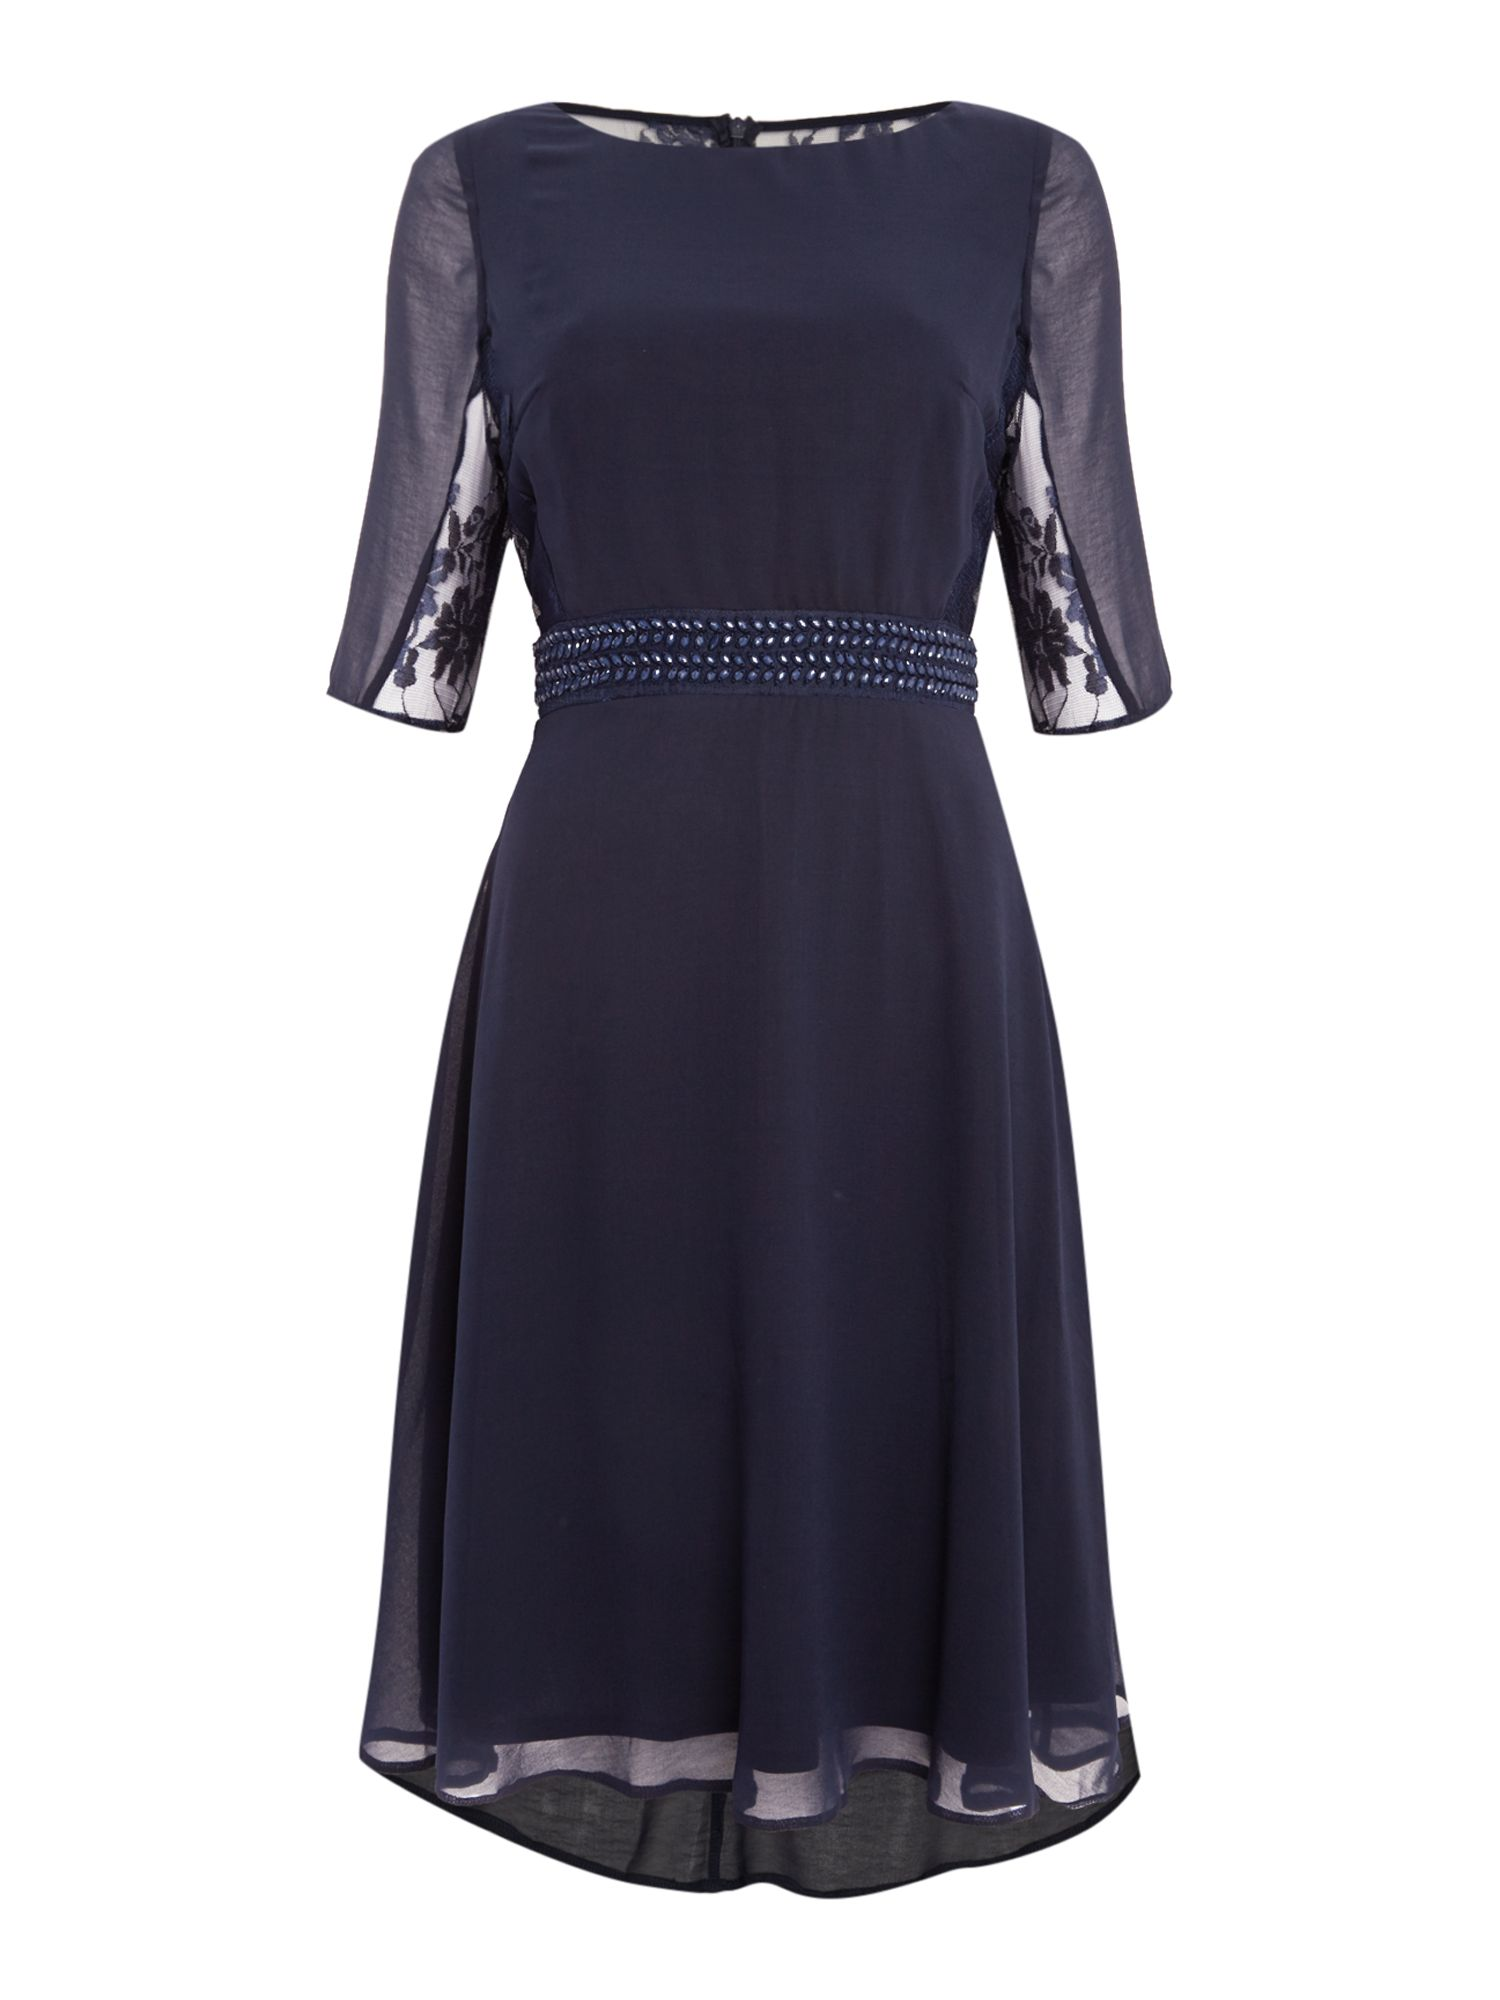 Elise Ryan Elise Ryan 3/4 Sleeve Lace Back Skater Dress, Navy